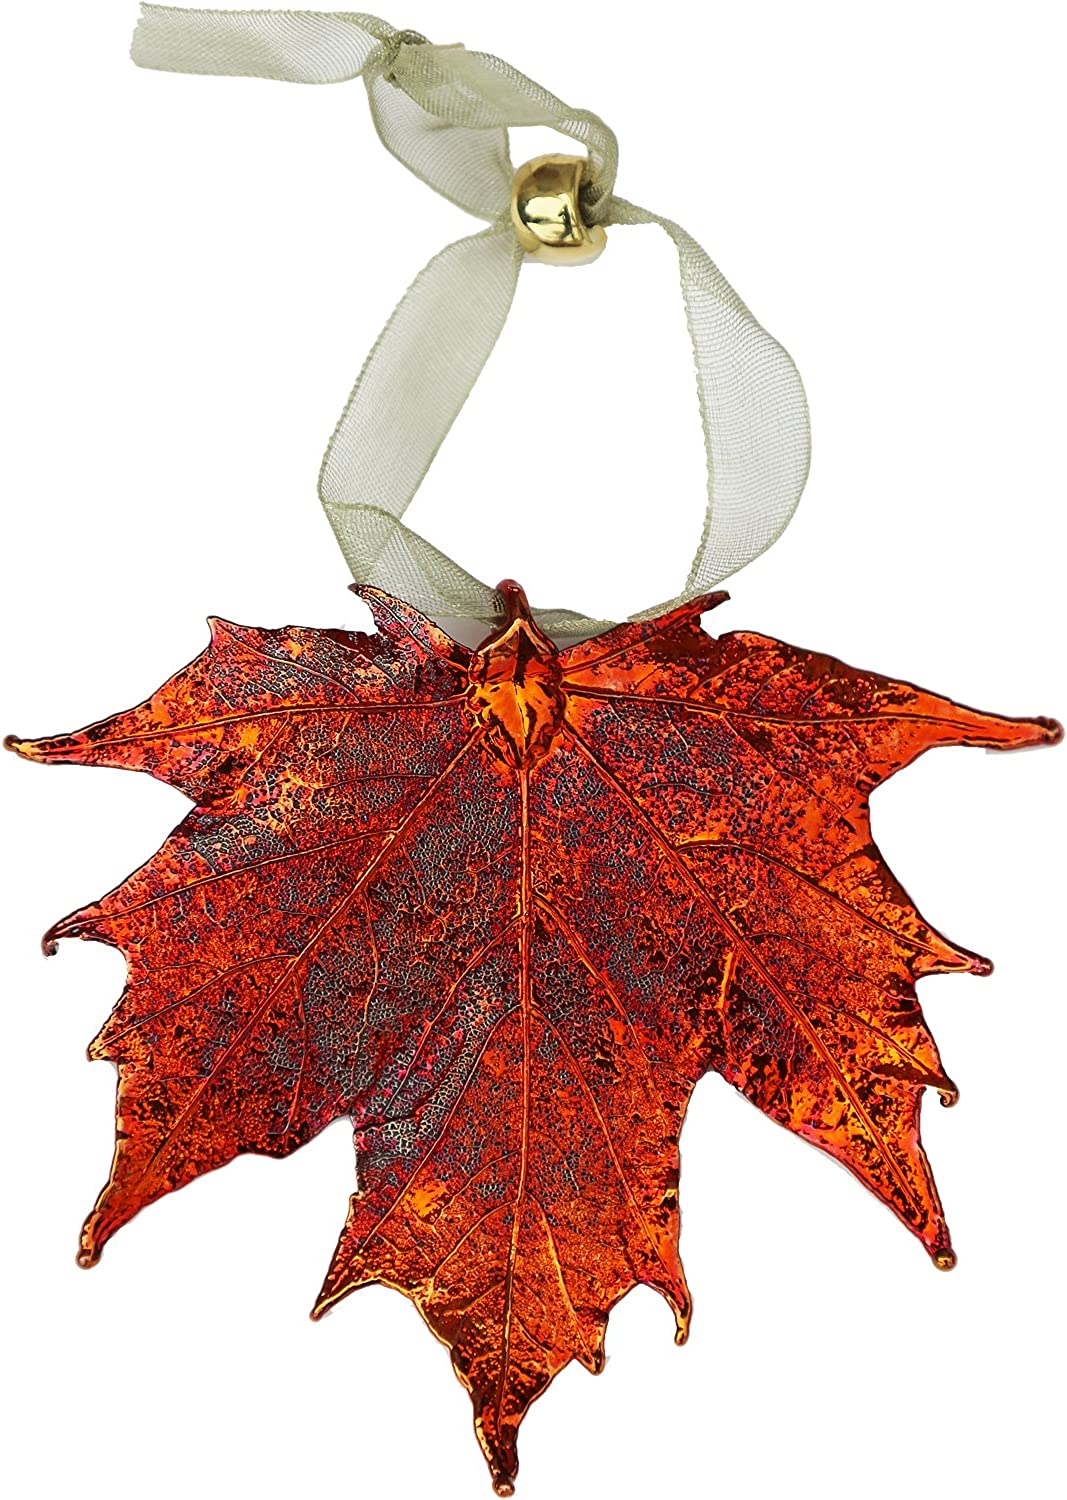 amazon com curious designs leaf ornament iridescent sugar maple copper dipped real leaves jewelry curious designs leaf ornament iridescent sugar maple copper dipped real leaves